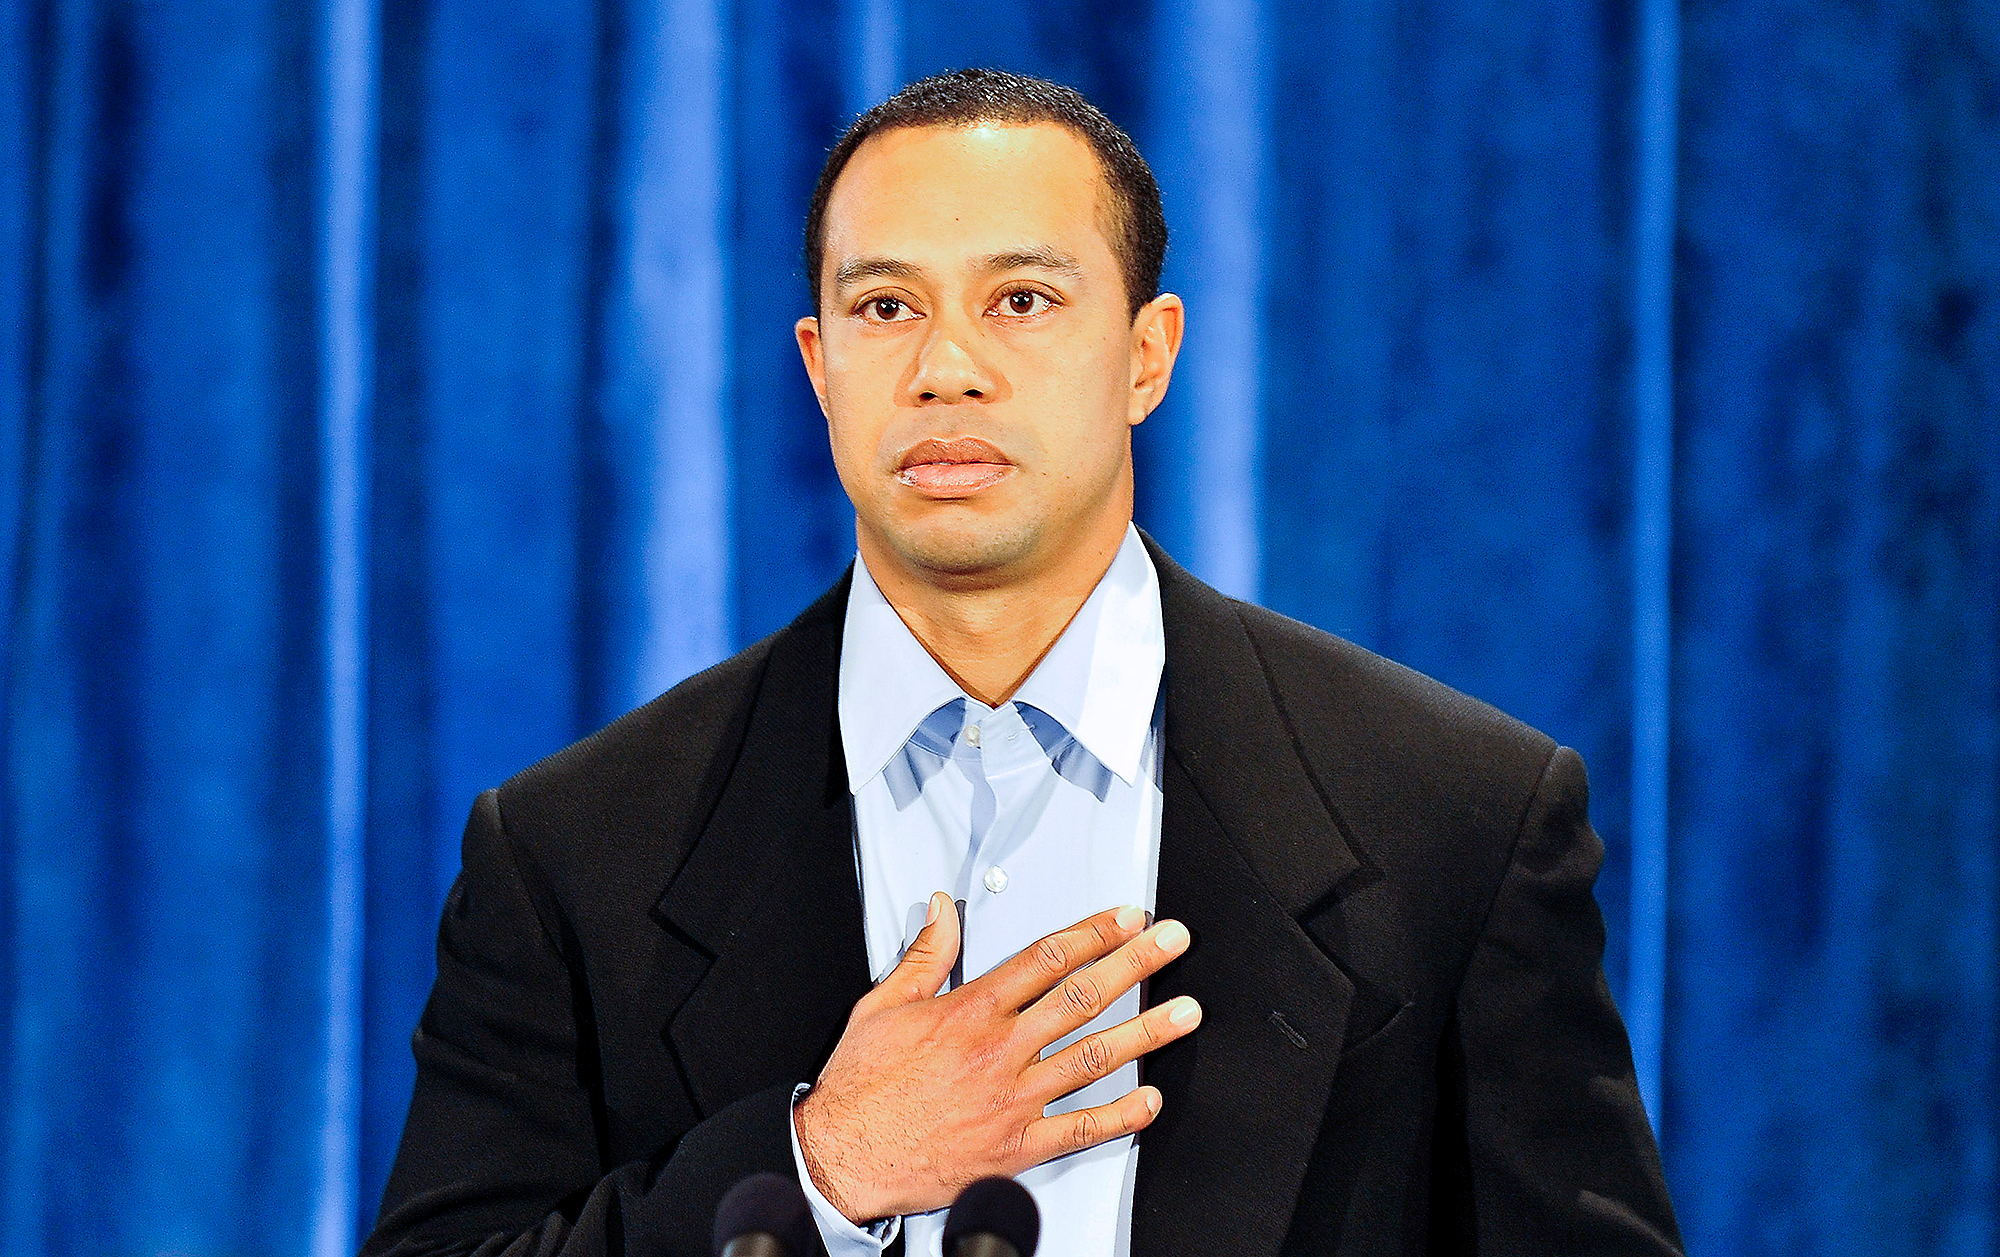 Golfer Tiger Woods Apologizes In First Appearance Since Self-Imposed Exile